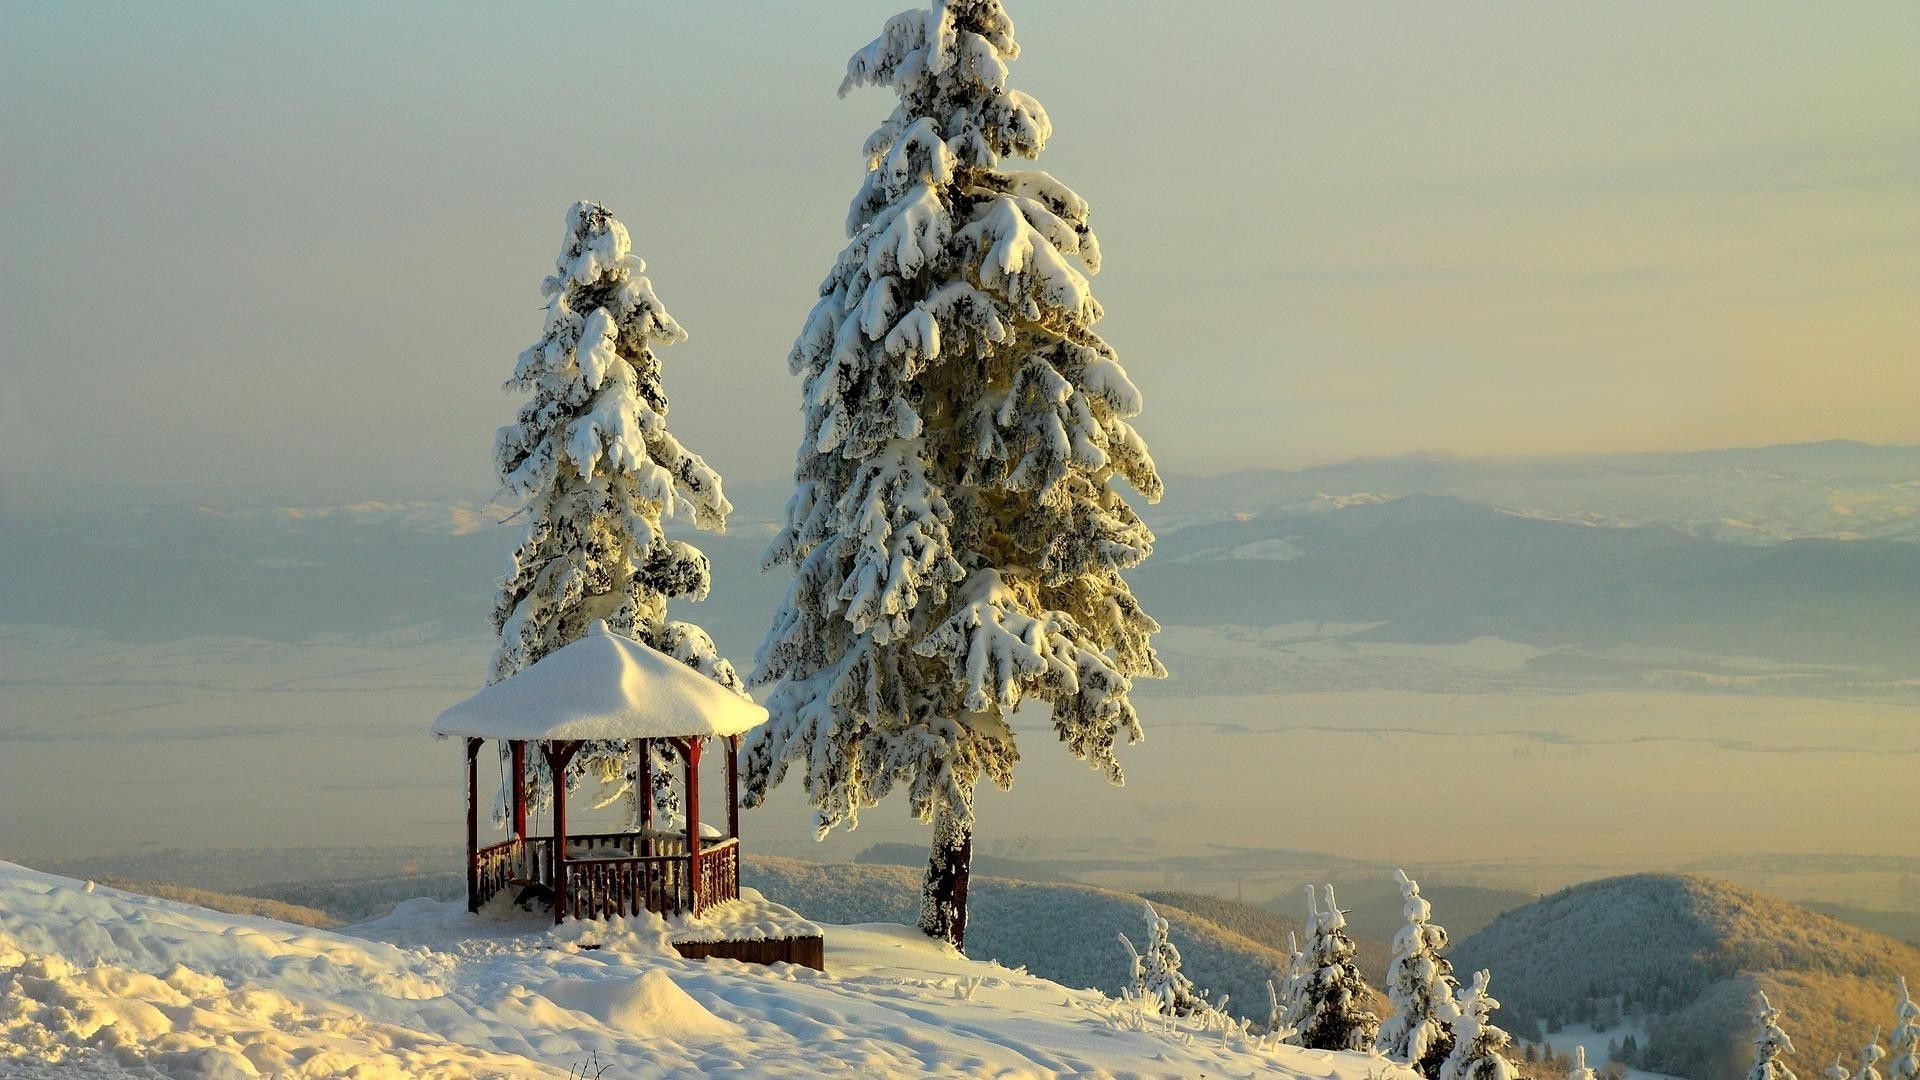 Winter Snow Scenes desktop wallpaper download